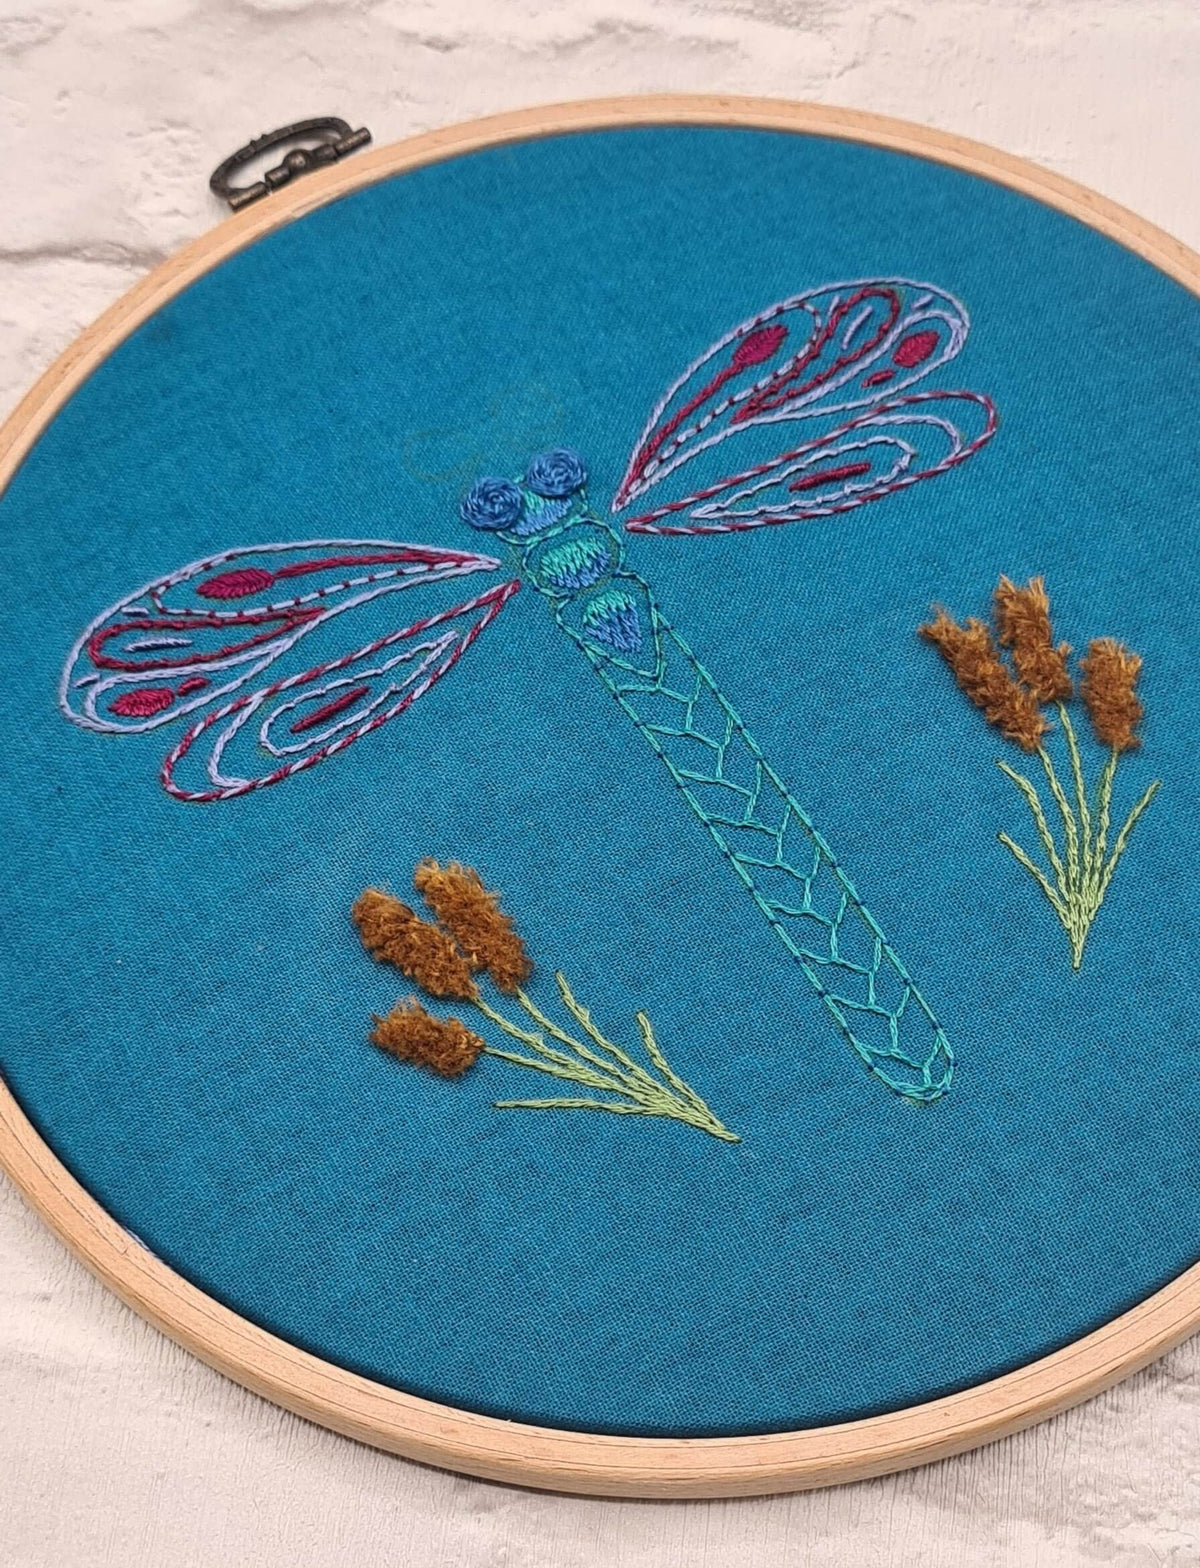 Paraffle Embroidery Pattern Dragonfly Embroidery Pattern